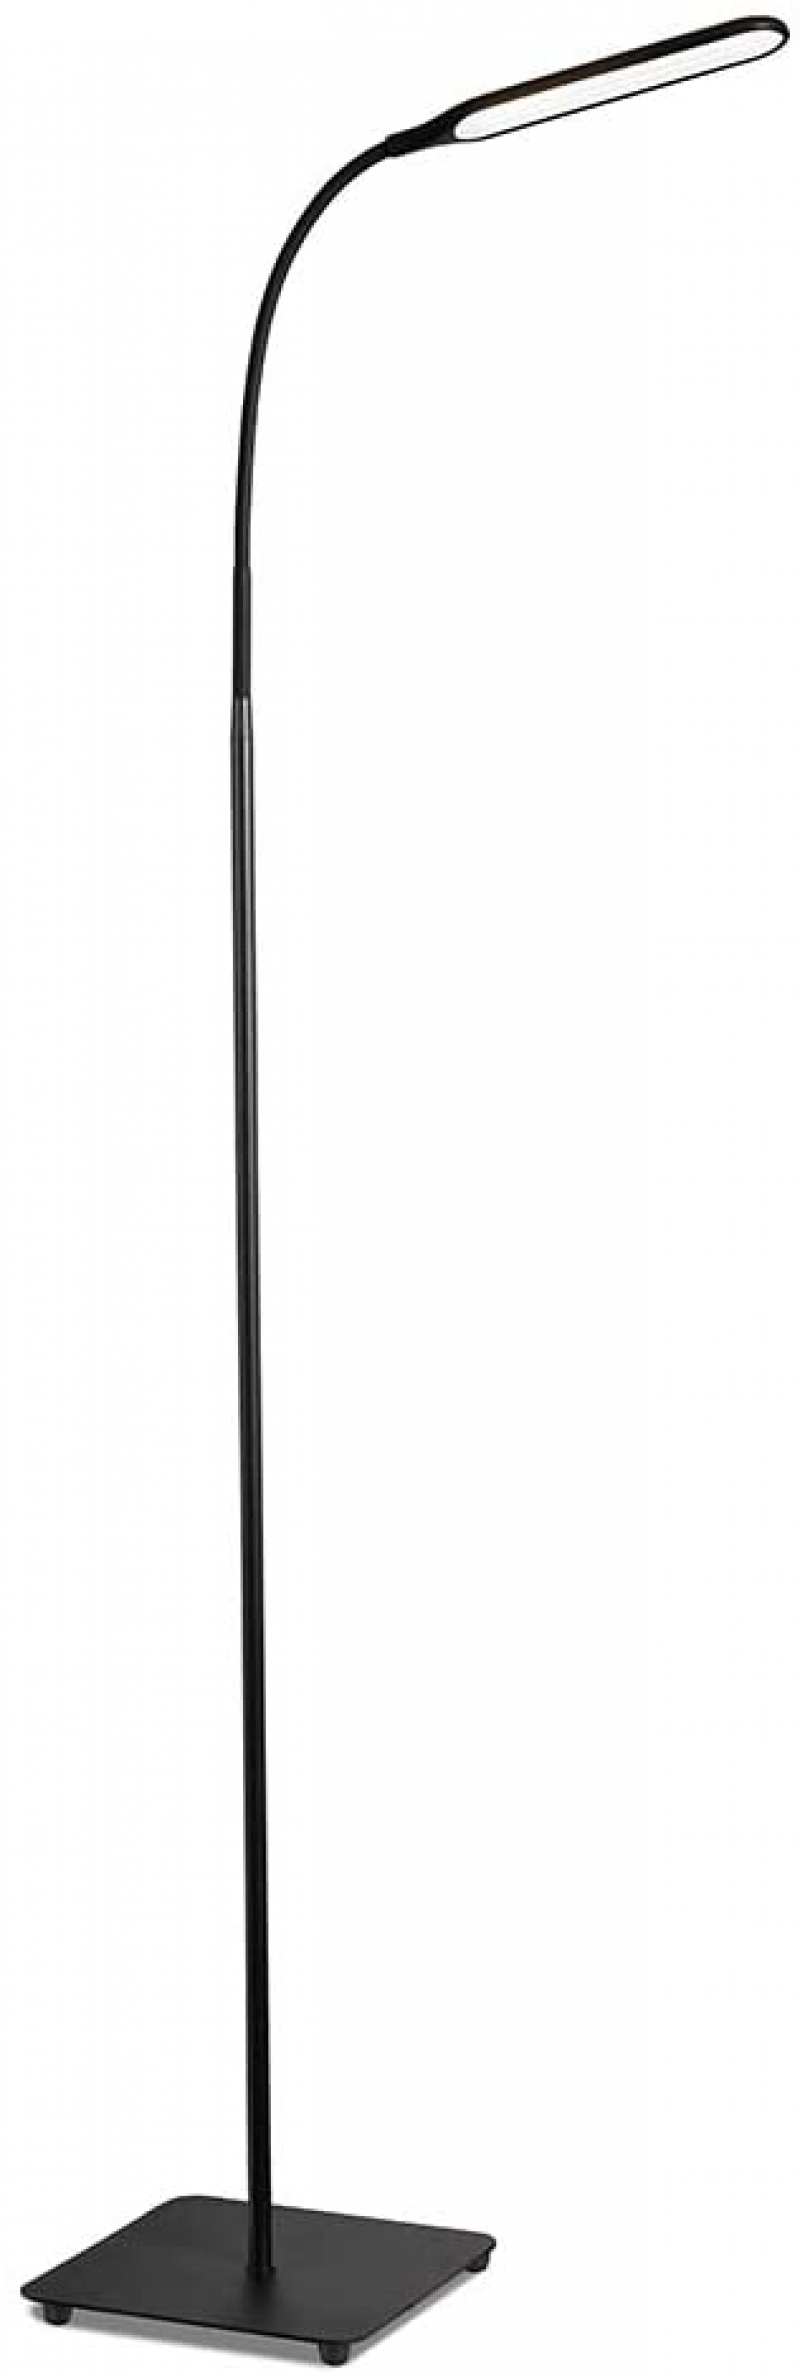 ihocon: TaoTronics LED Floor Lamp, 4 Brightness Levels & 4 Colors Dimmable 光線微調落地燈(4種亮度及4種光色)